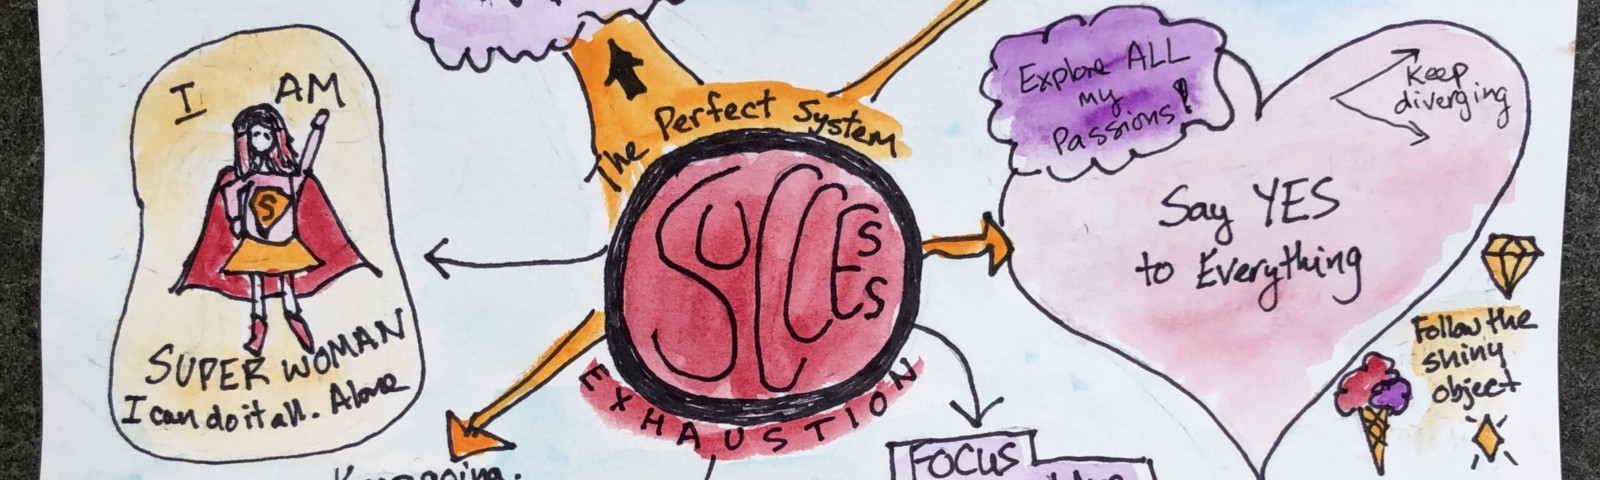 sketch of the perfect system, a visual overview of this article